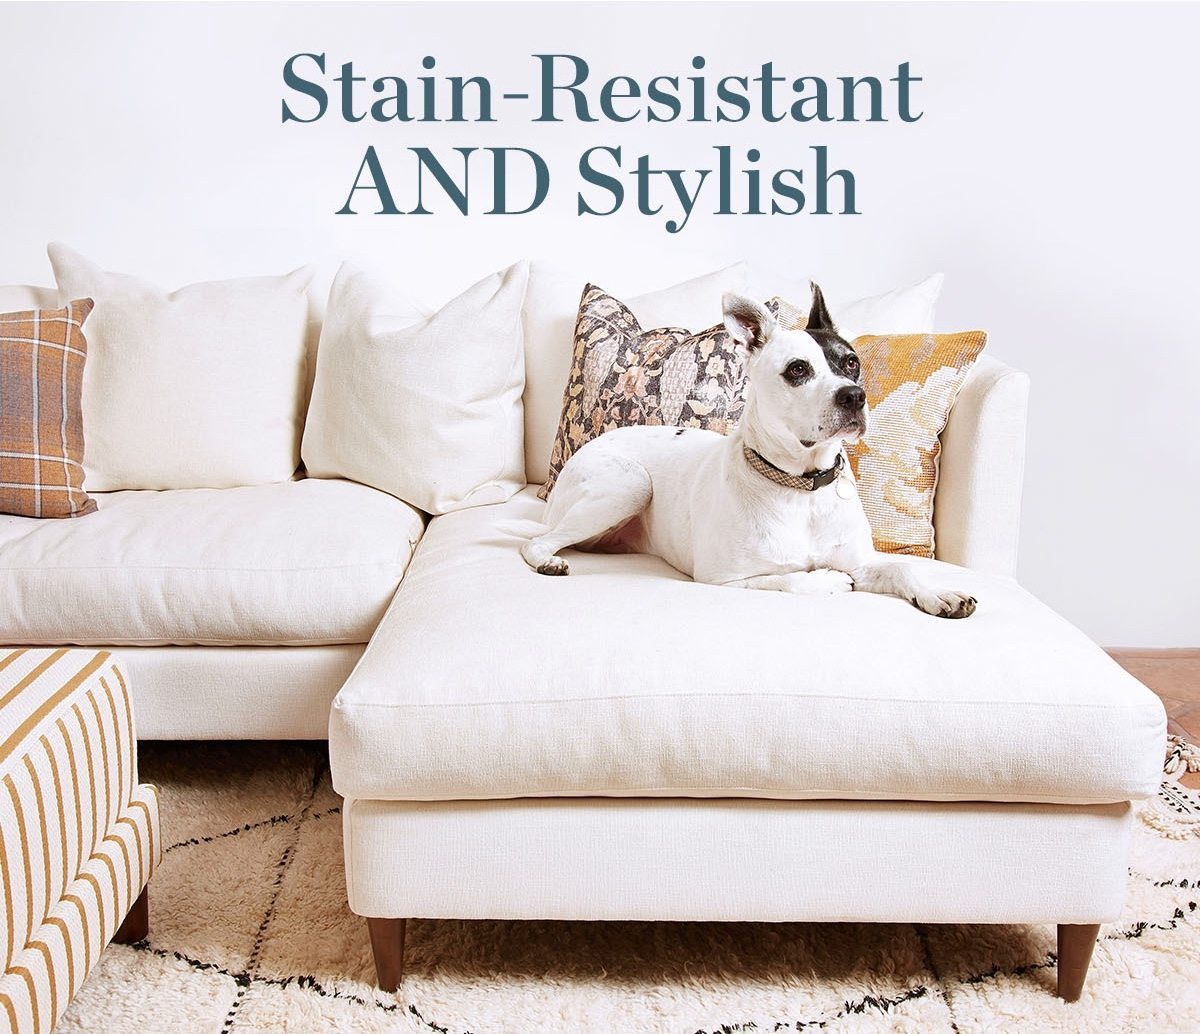 Stain resistant and stylish